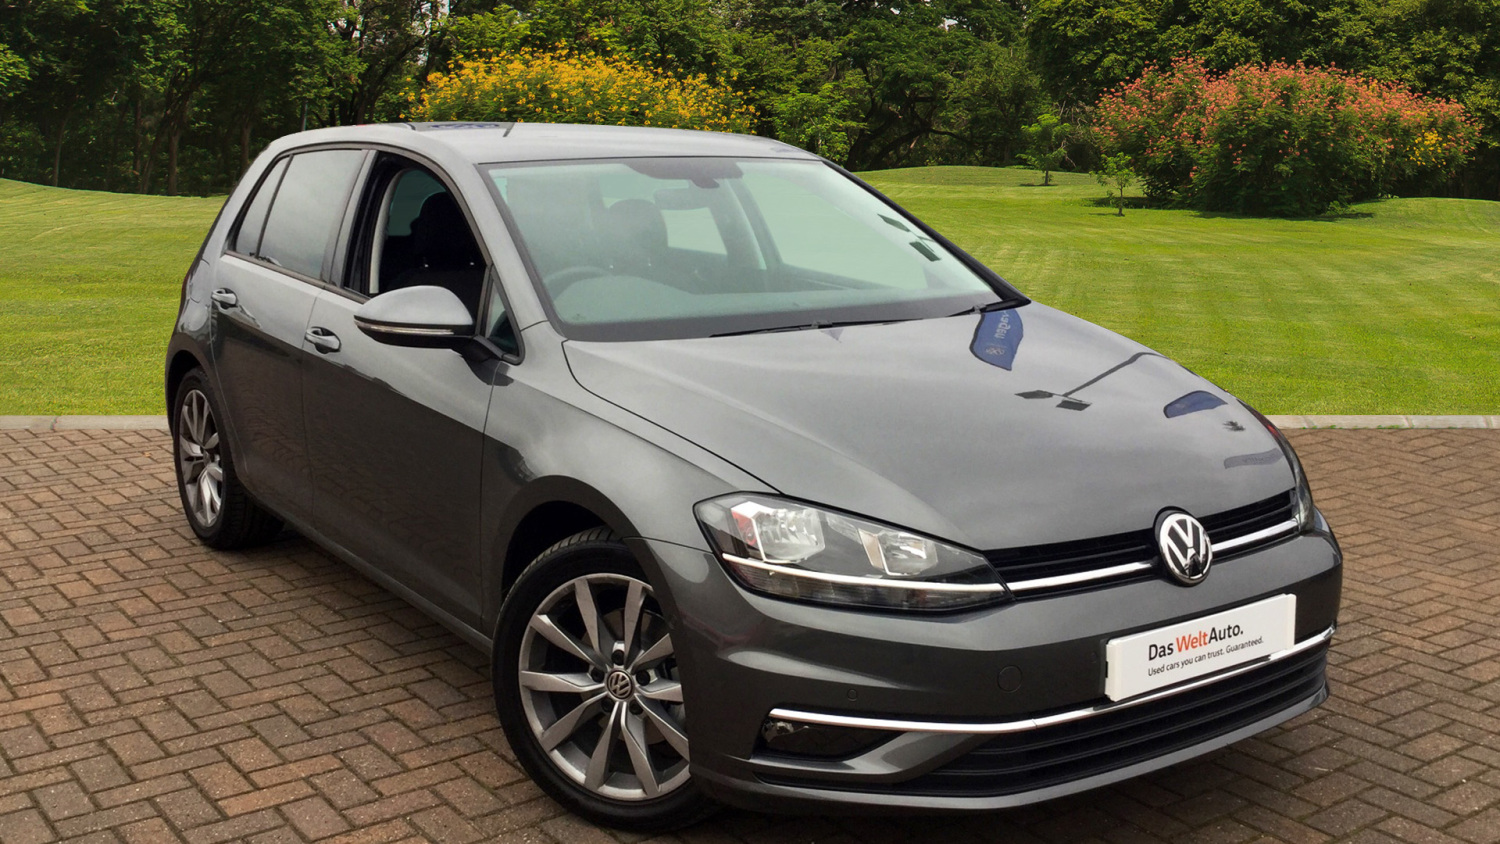 used volkswagen golf 1 6 tdi gt 5dr diesel hatchback for sale bristol street motors. Black Bedroom Furniture Sets. Home Design Ideas